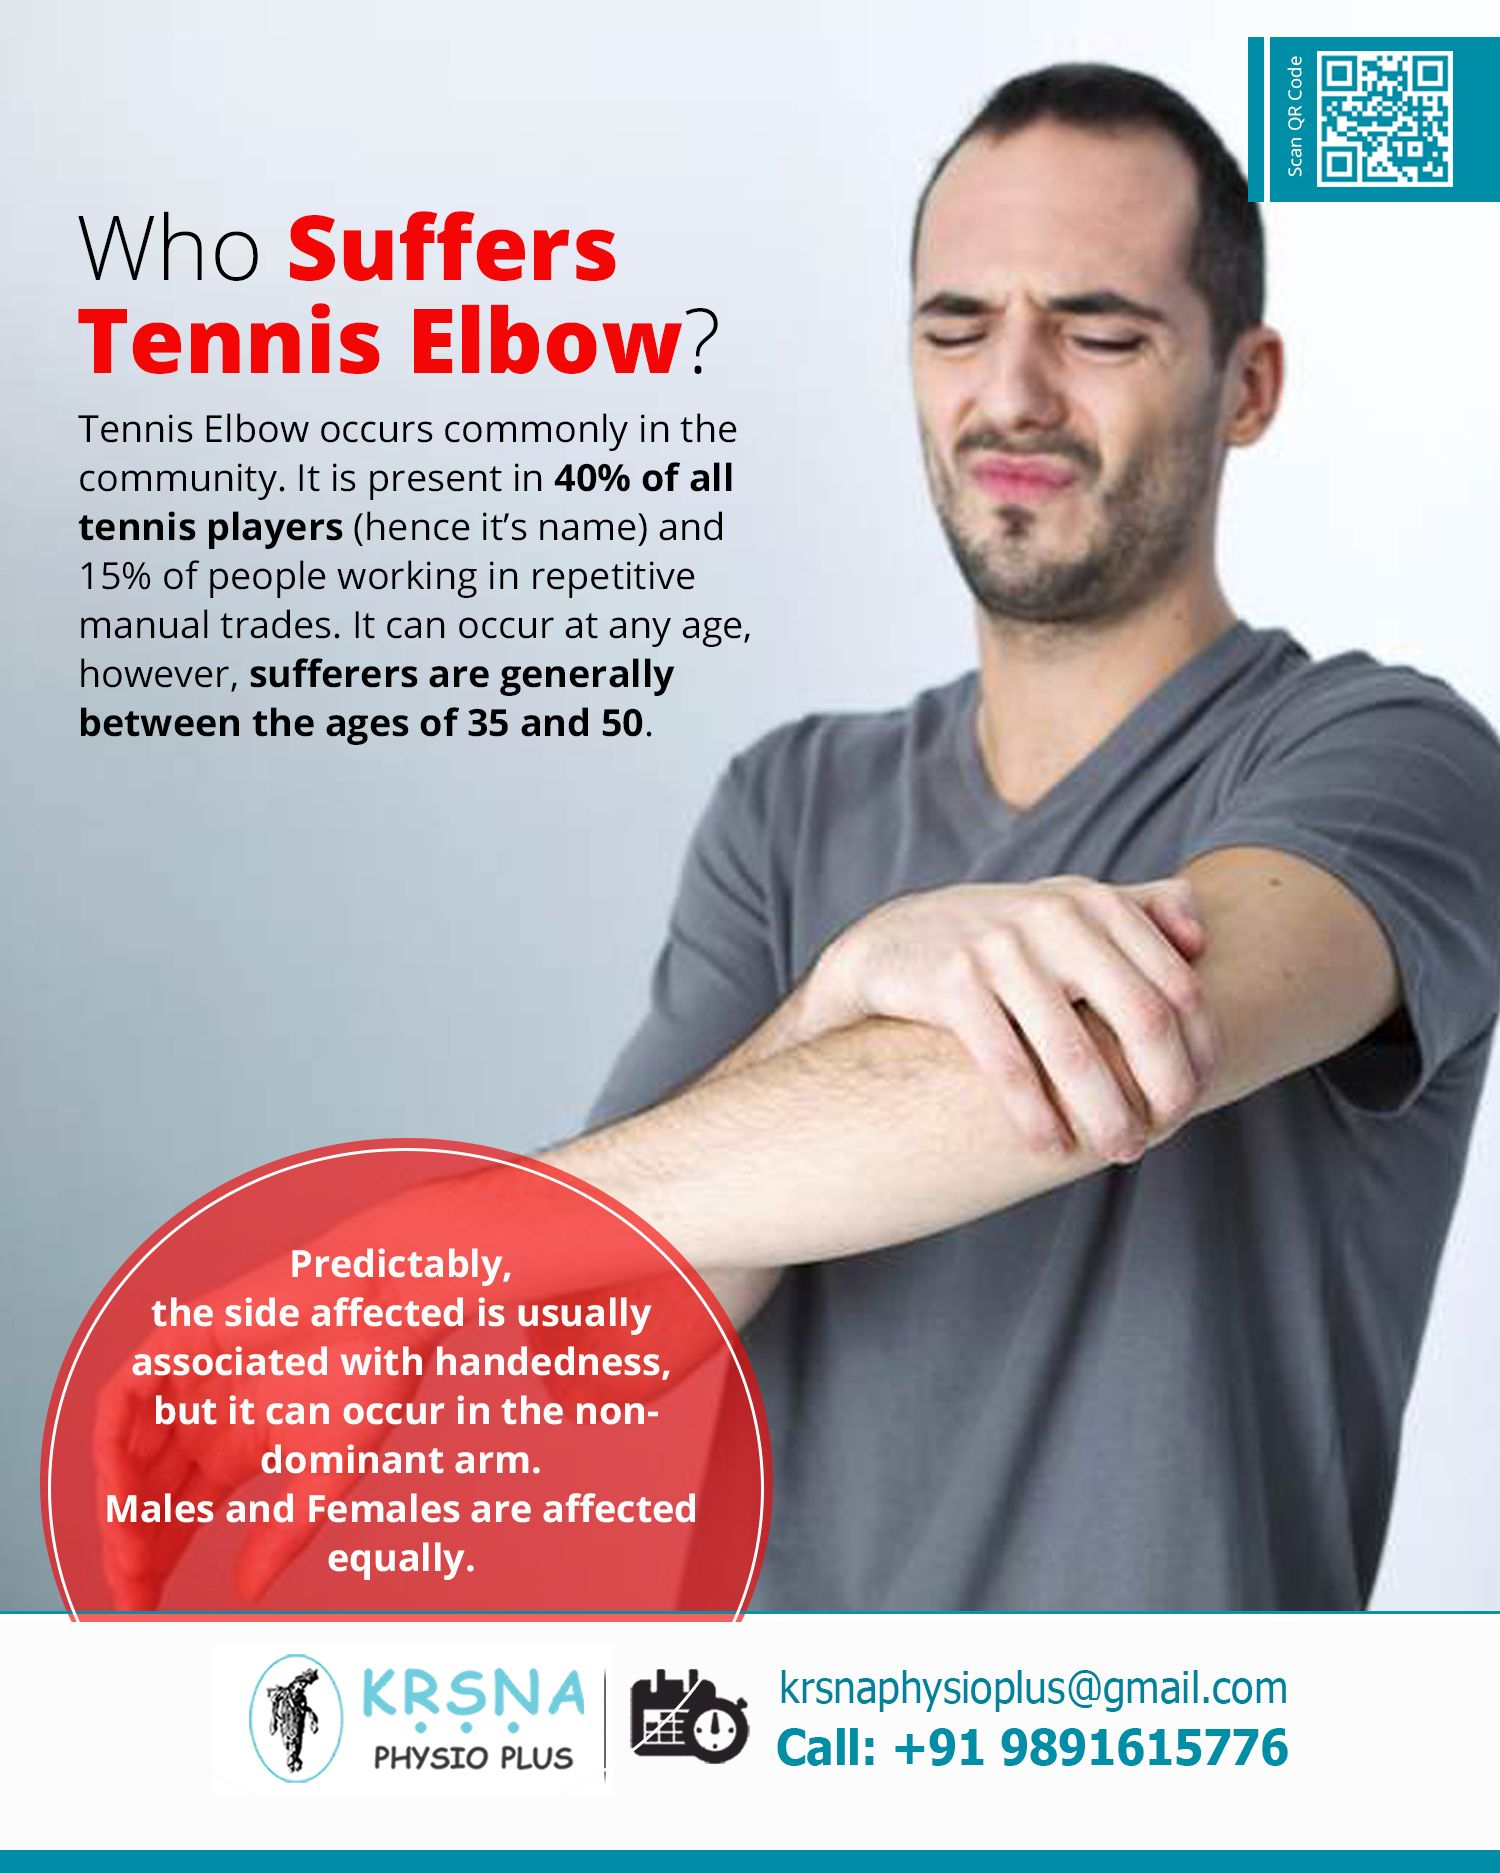 Who Suffers ‪#‎Tennis_Elbow‬??? To Know More - http://bit.ly/1PO8PDr ‪#‎Krsnaphysioplus‬ ‪#‎Wellness‬ ‪#‎Centre‬ ‪#‎Gurgaon‬